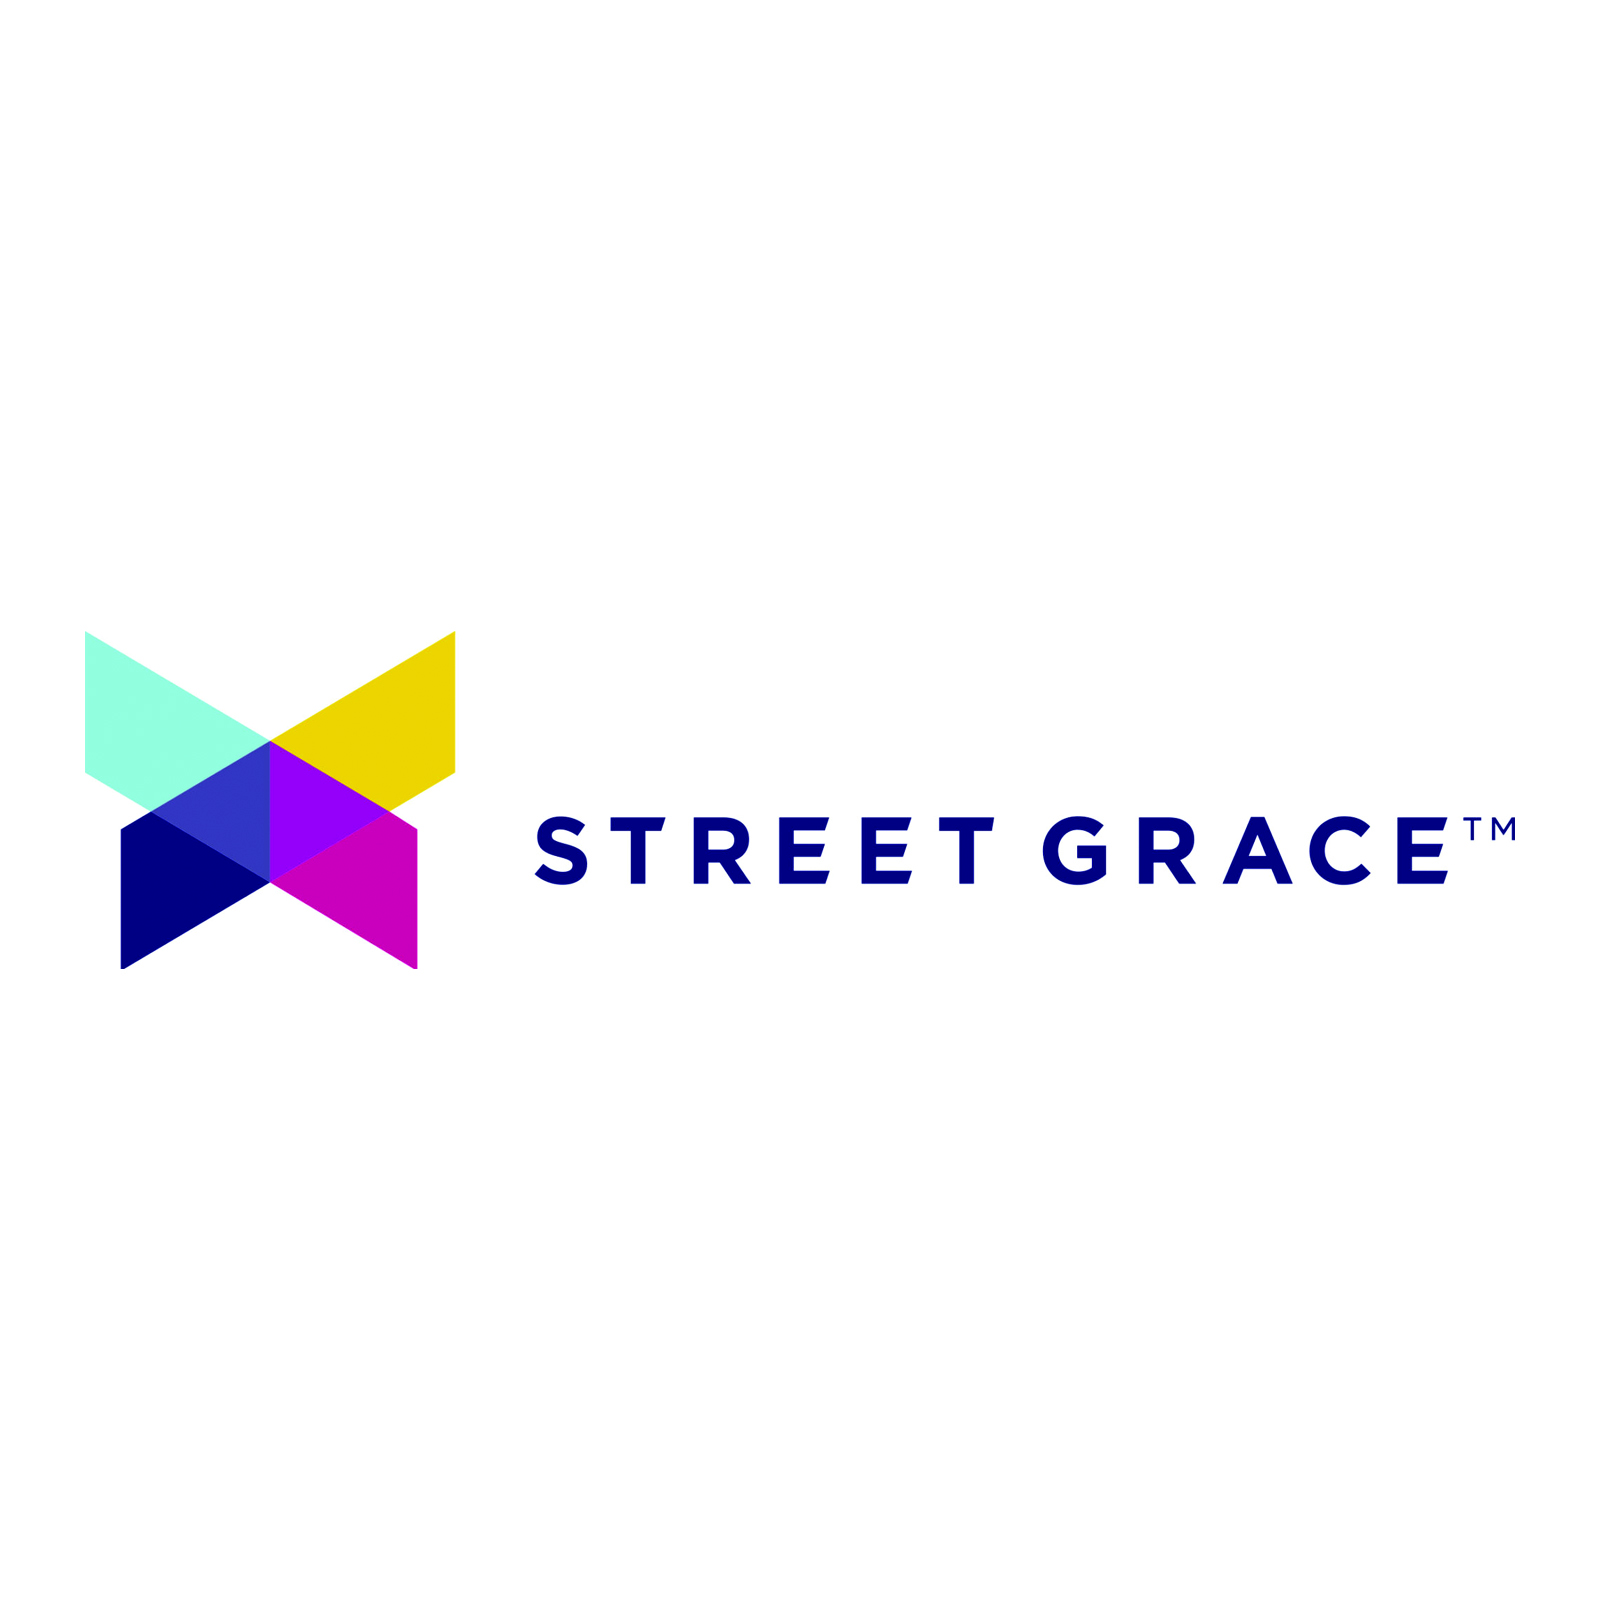 Street Grace   Mobilizing faith, business and community leaders to end the sexual trafficking of children throughout the U.S. through awareness, education and action.   www.streetgrace.org